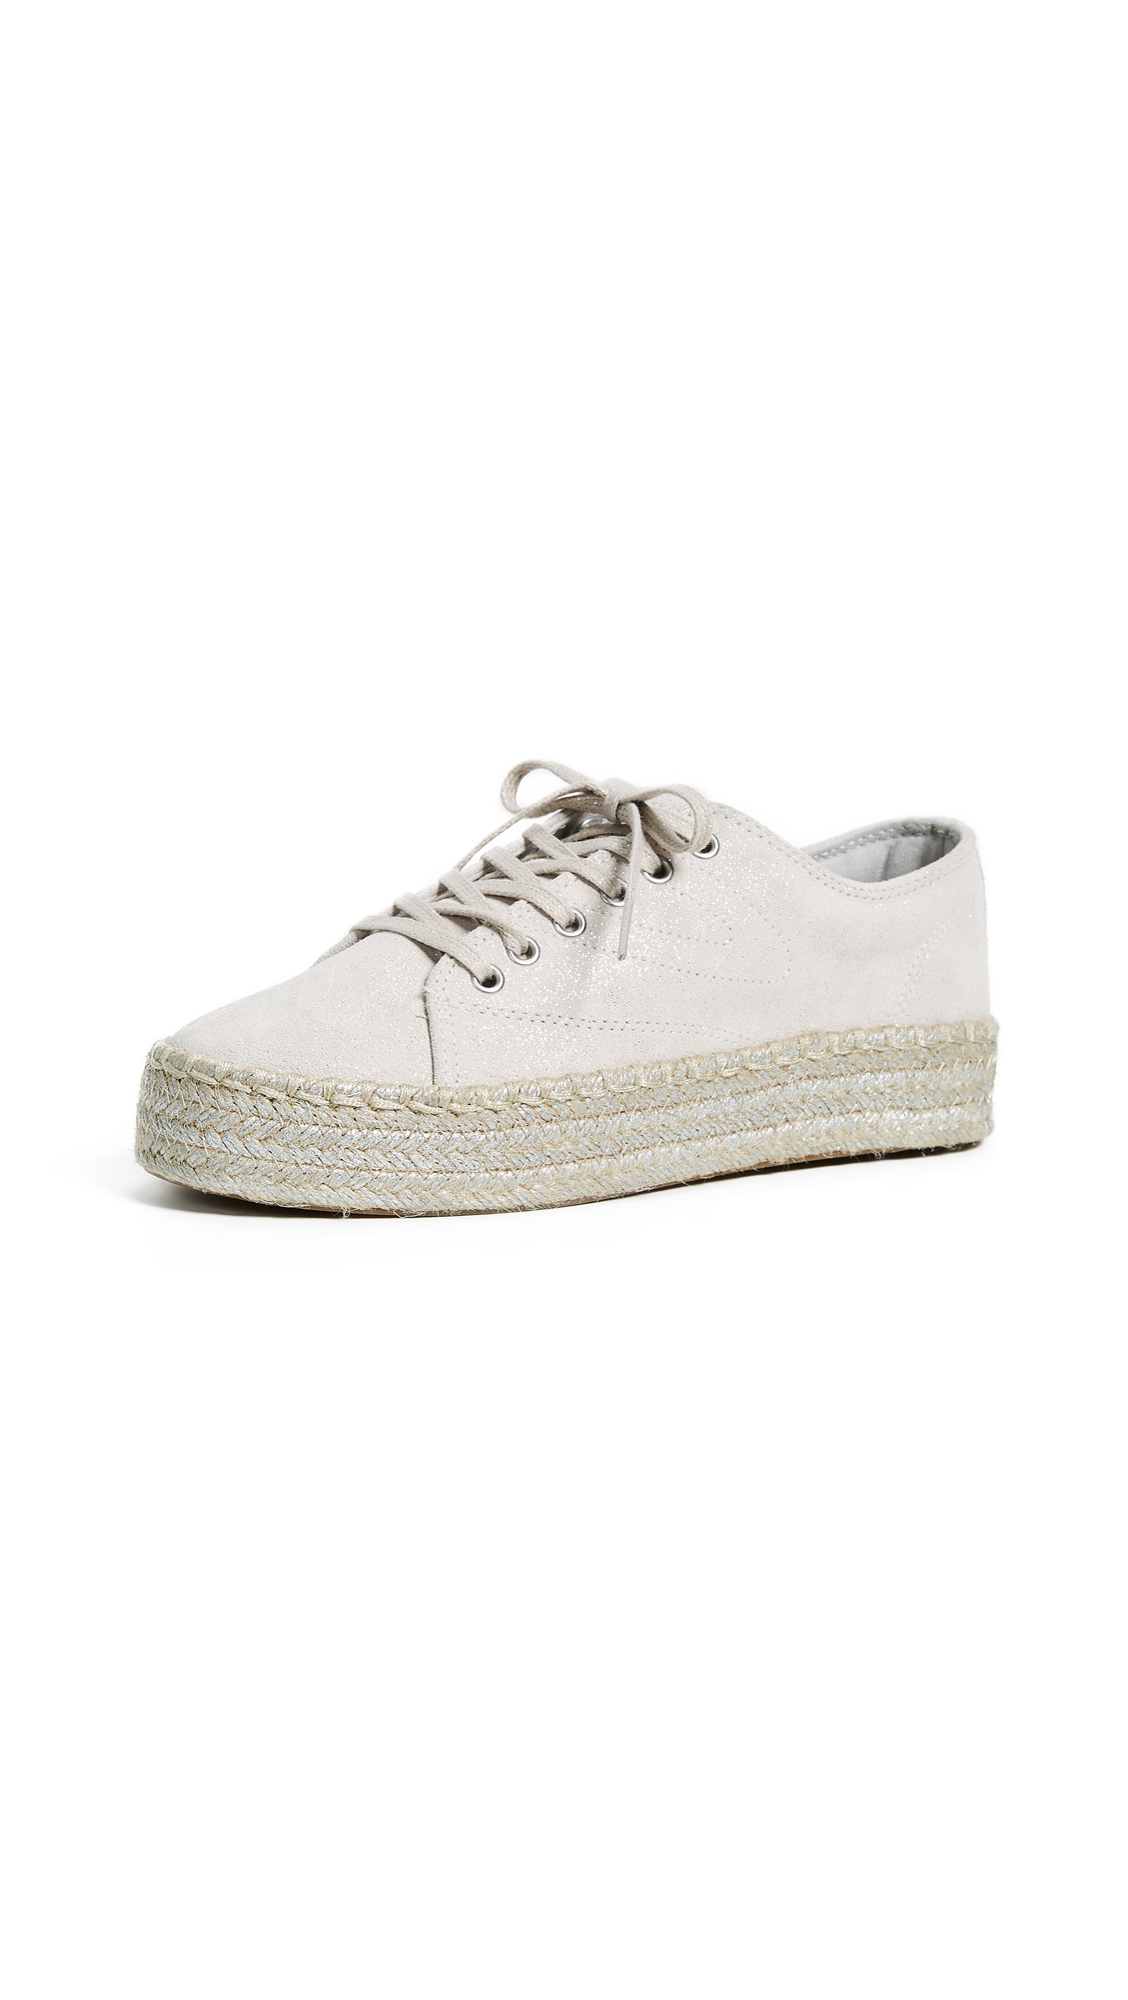 Tretorn Eve Lace Up Espadrille Sneakers - Birch/Silver